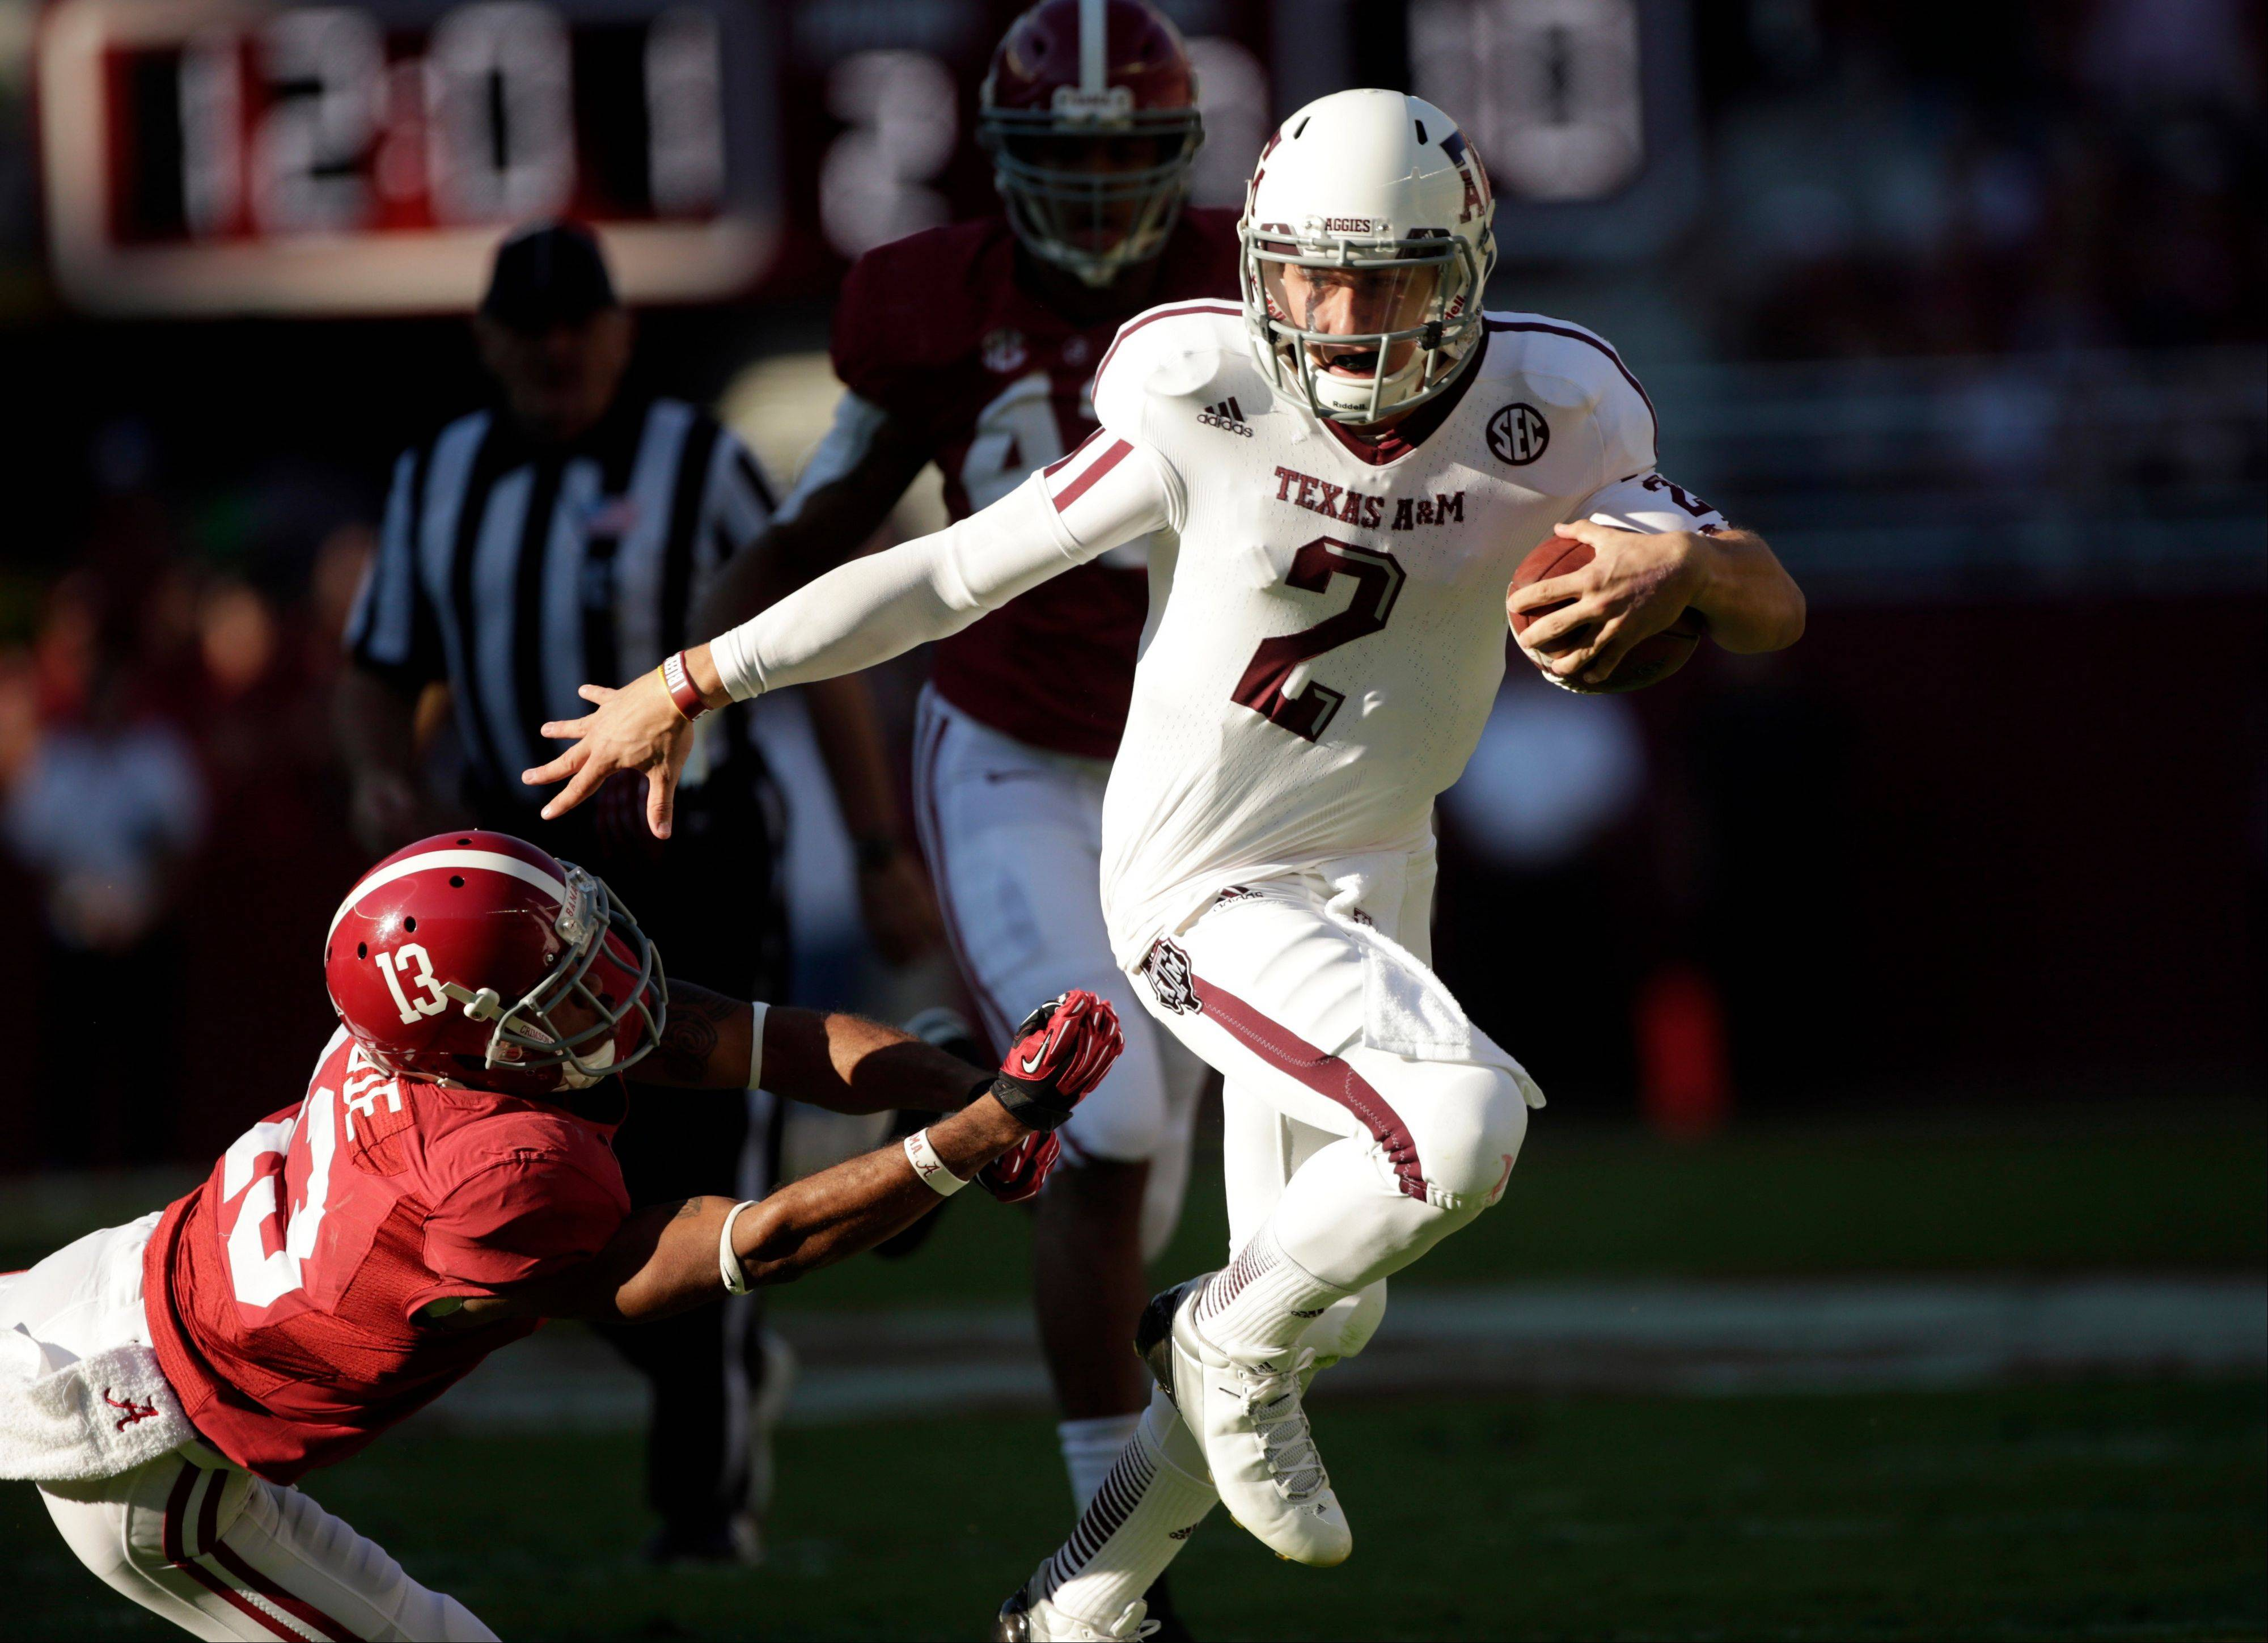 Texas A&M quarterback and Heisman Trophy winner Johnny Manziel has been in the news lately, and not for anything good.